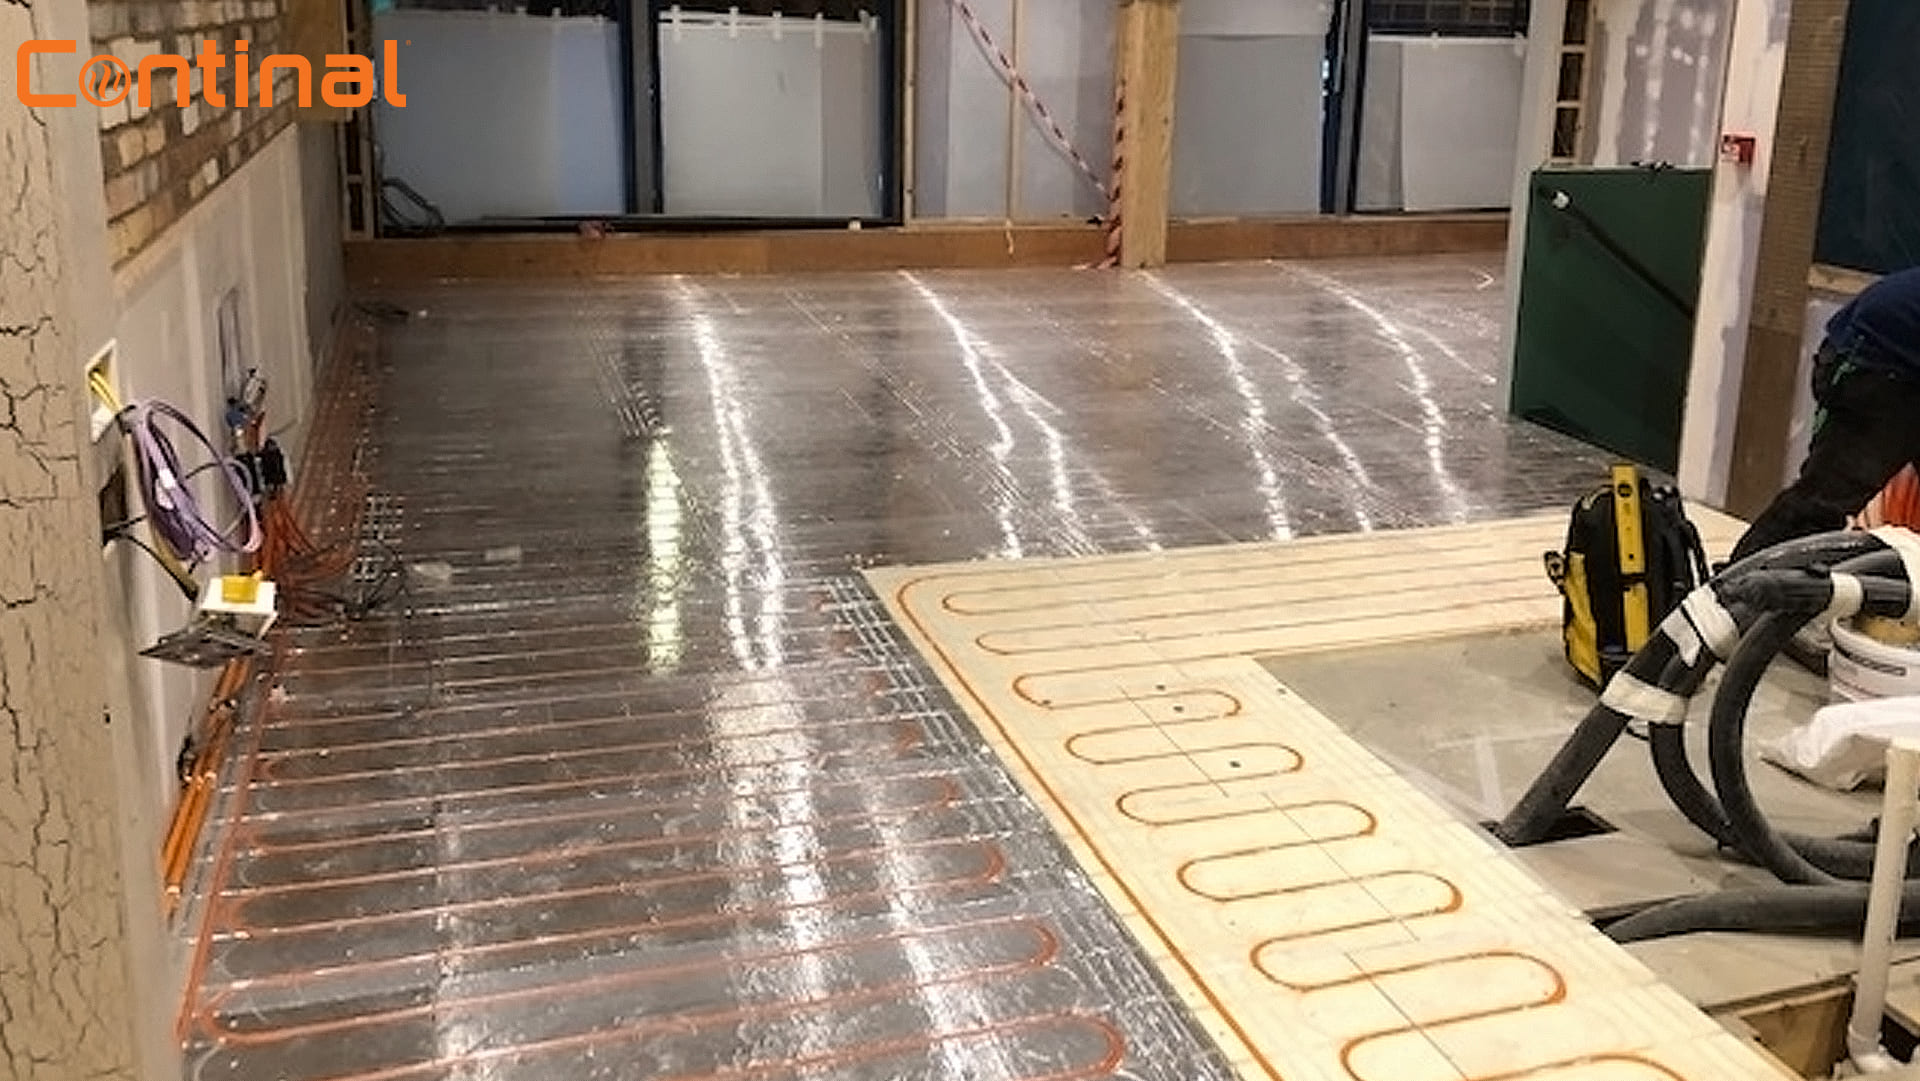 Our client was looking for a large underfloor heating system for an upcoming retrofit project. The system needed to be installed across two floors of a house, and also had to work efficiently with a mixture of floor coverings, including tiles, wood and carpet.